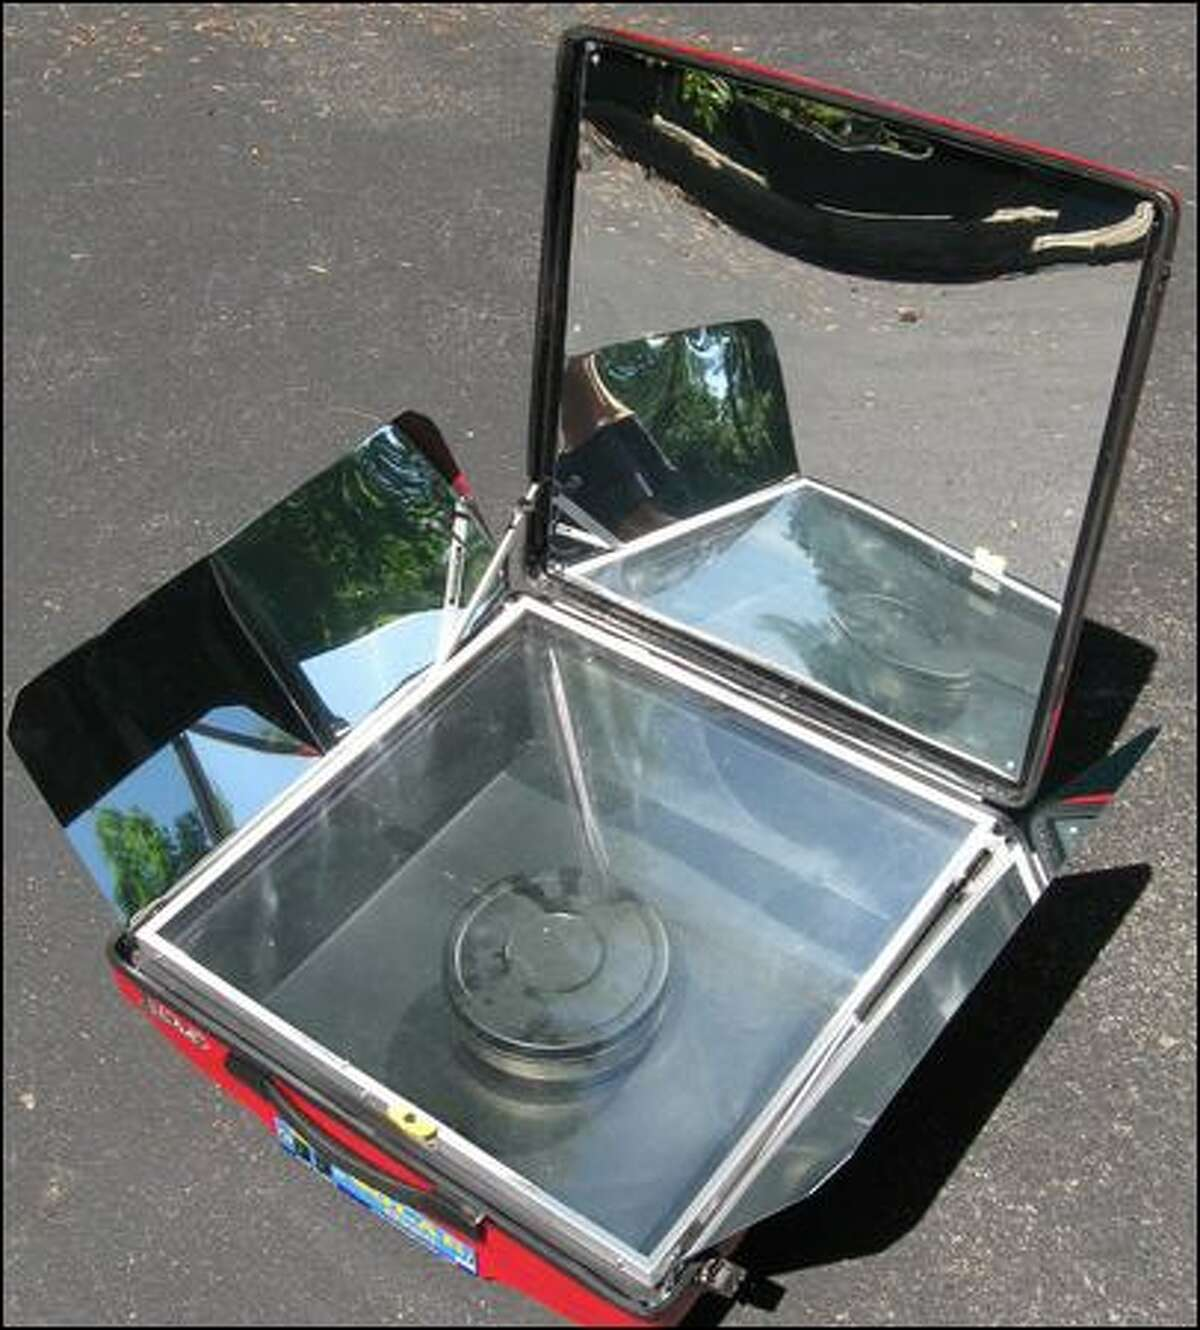 The Tulsi-Hybrid's extra side reflectors bring more solar heat into the insulated oven and directly onto the top of the stainless steel pot. (Jim Dulley)